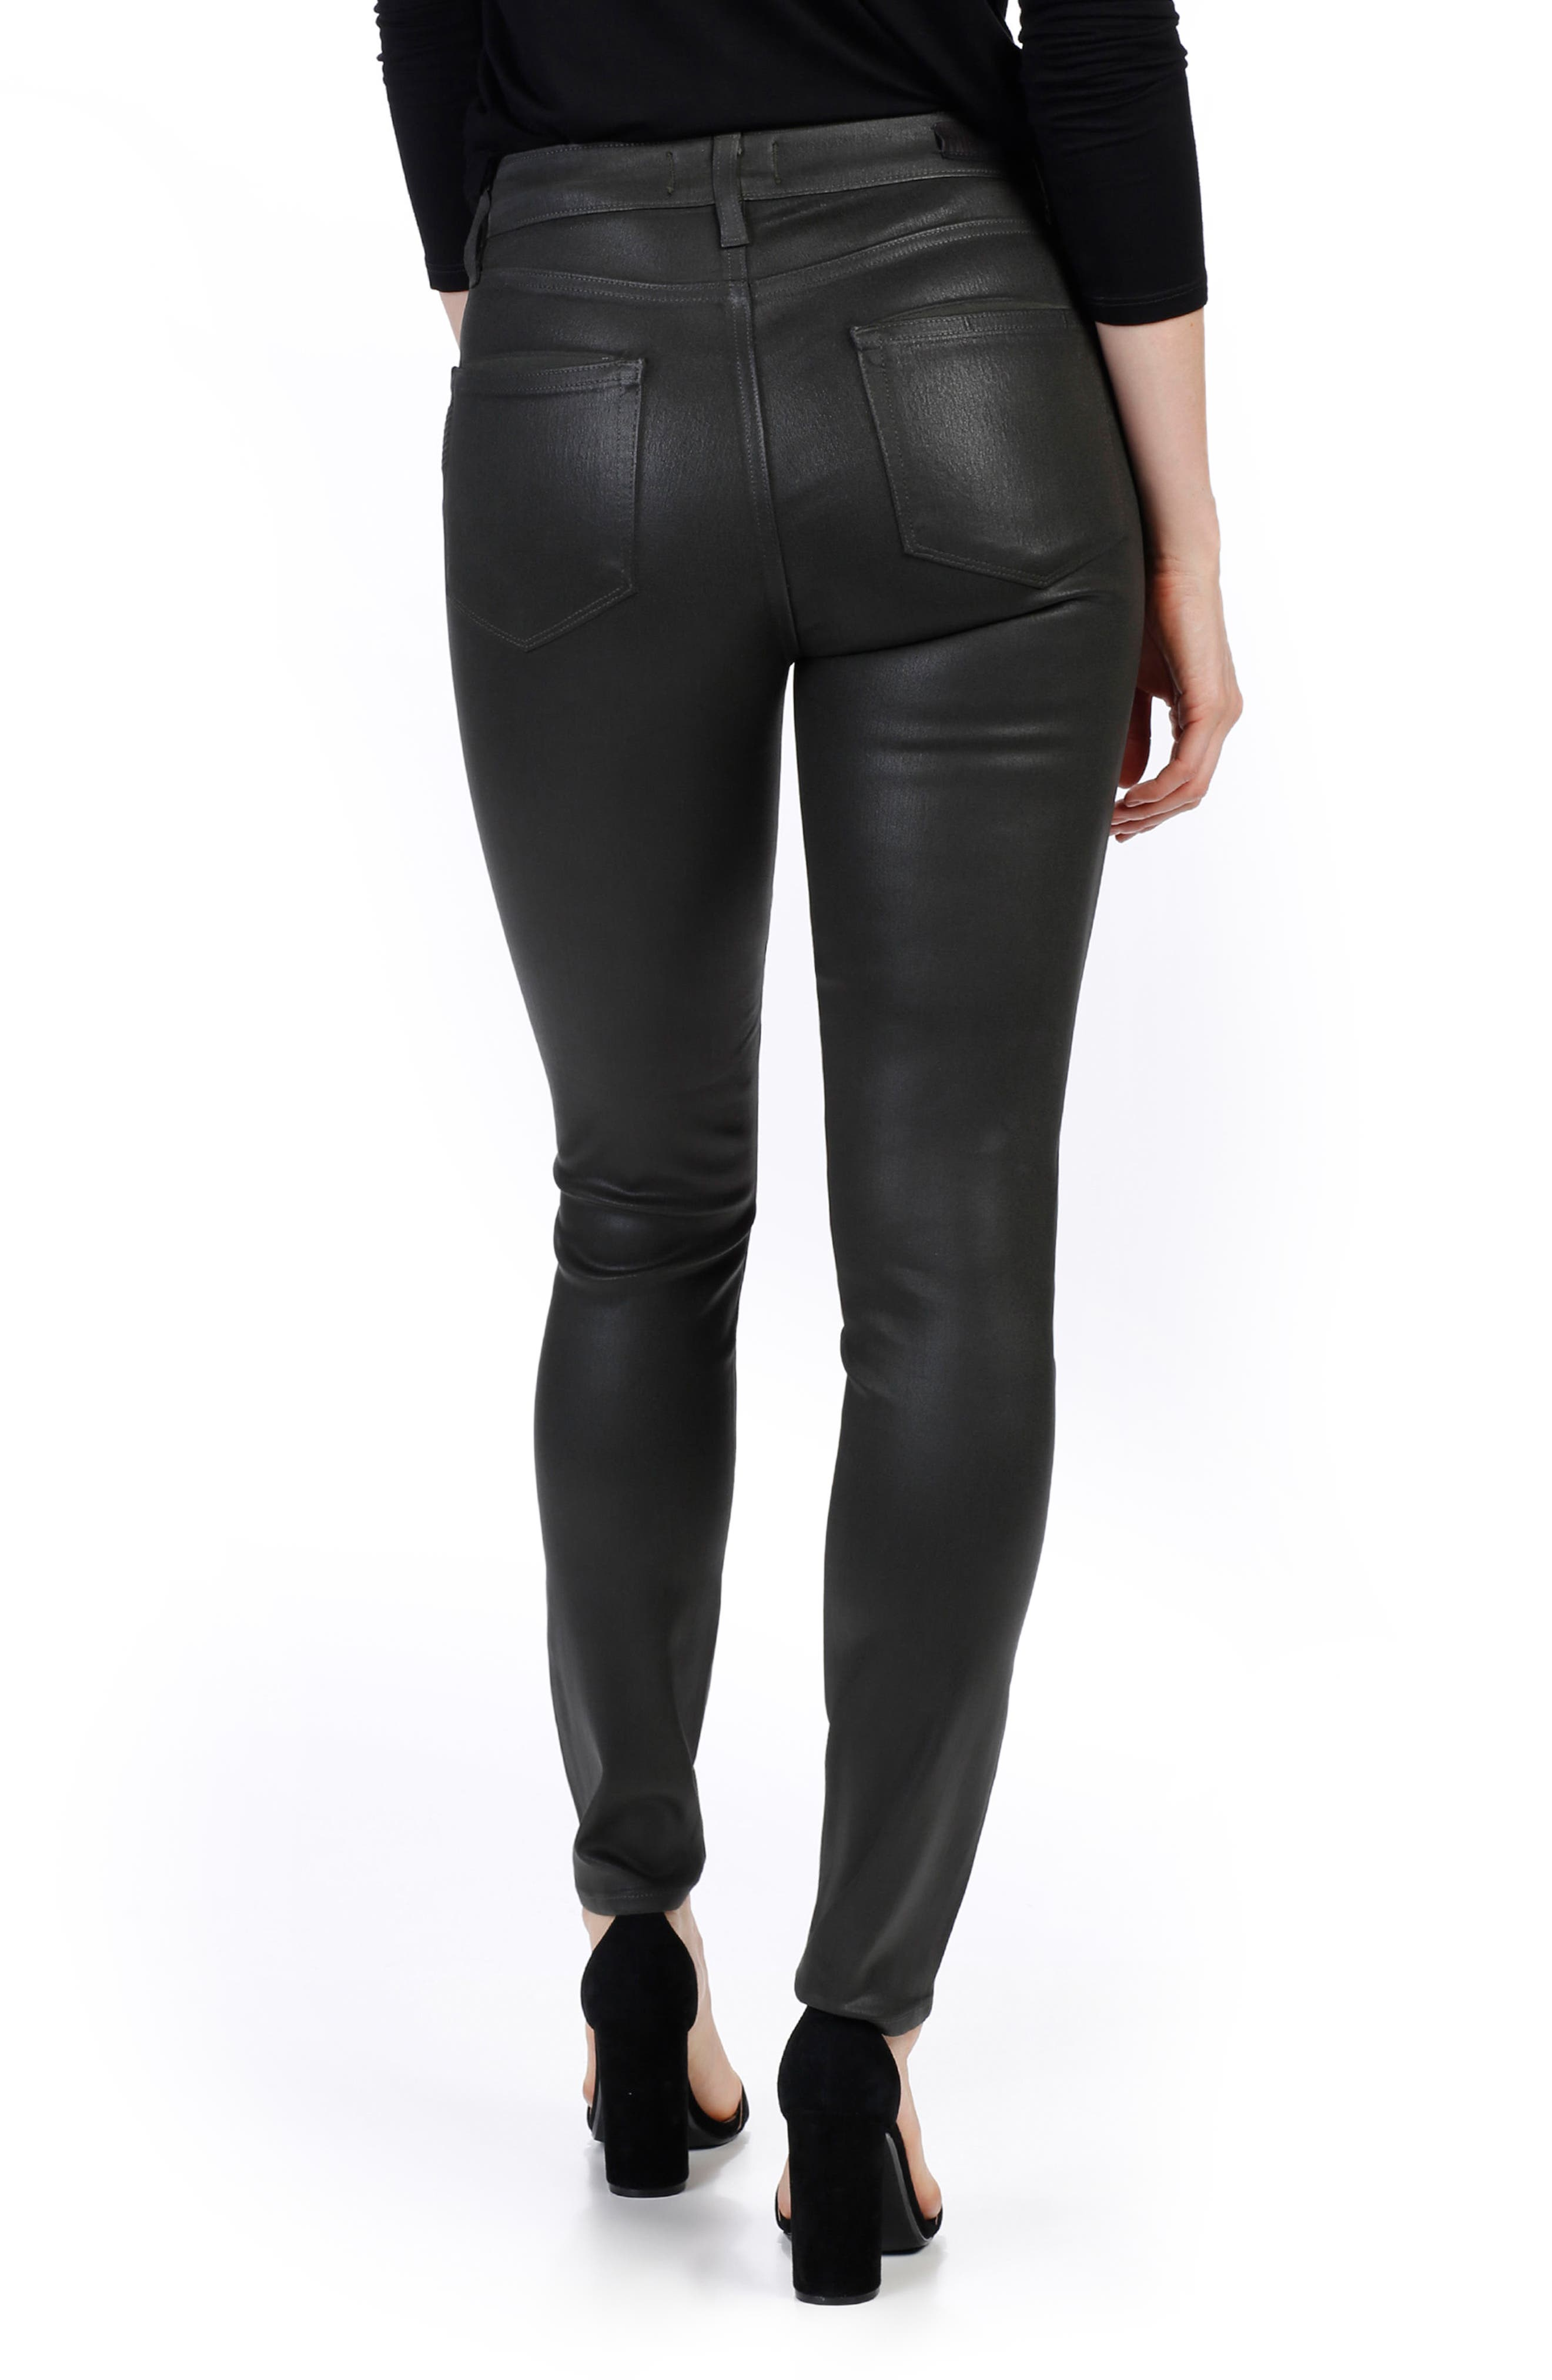 Transcend - Hoxton Coated High Waist Ankle Skinny Jeans,                             Alternate thumbnail 2, color,